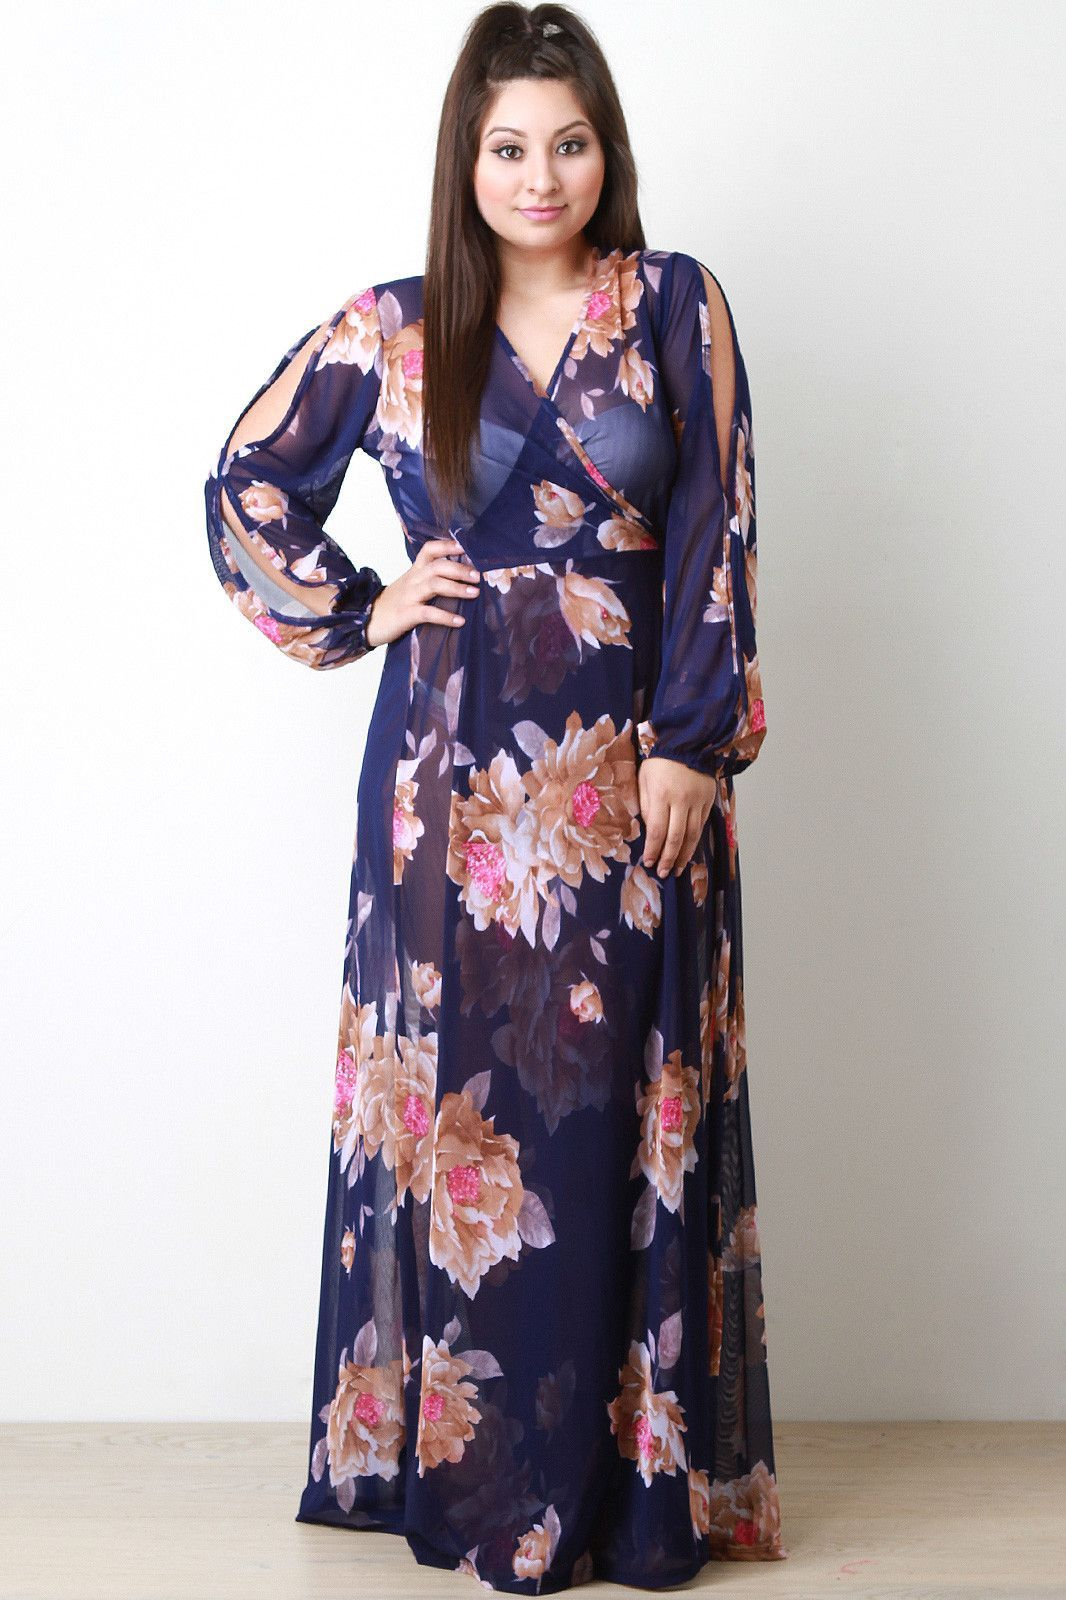 Semi-Sheer Floral Wrap Maxi Dress | Maxi wrap dress, Dresses ...